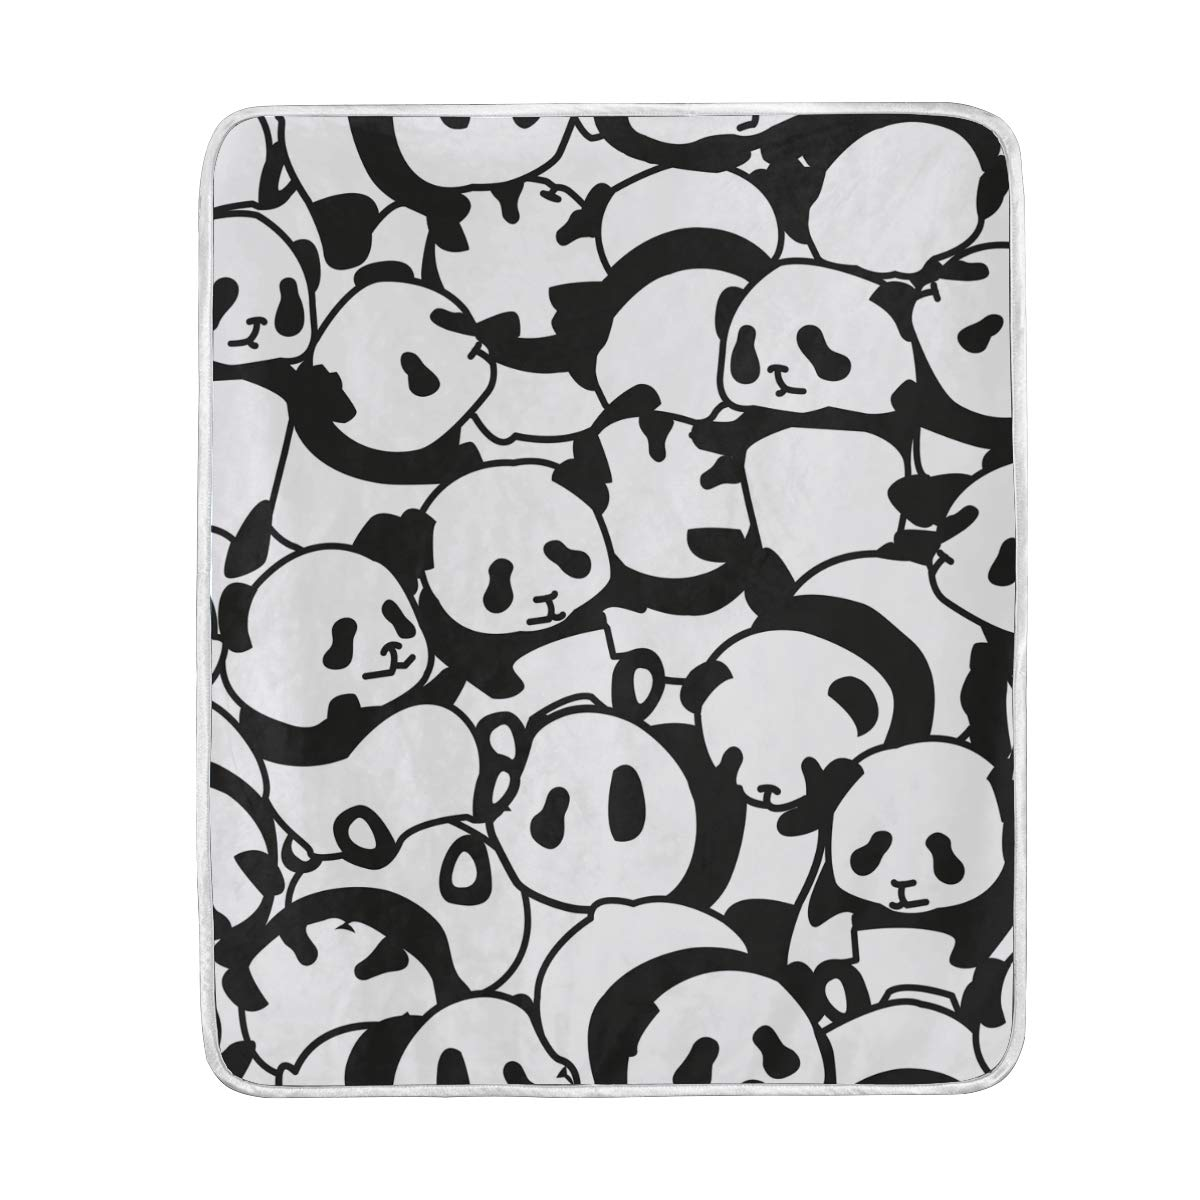 ALAZA Seasonal Quilt Cartoon Black and White Panda Crystal Velvet Throw Blanket for Bed 50 x 60 inch Kids Baby Girls Colorful Painting Couch Blanket Throw Decor